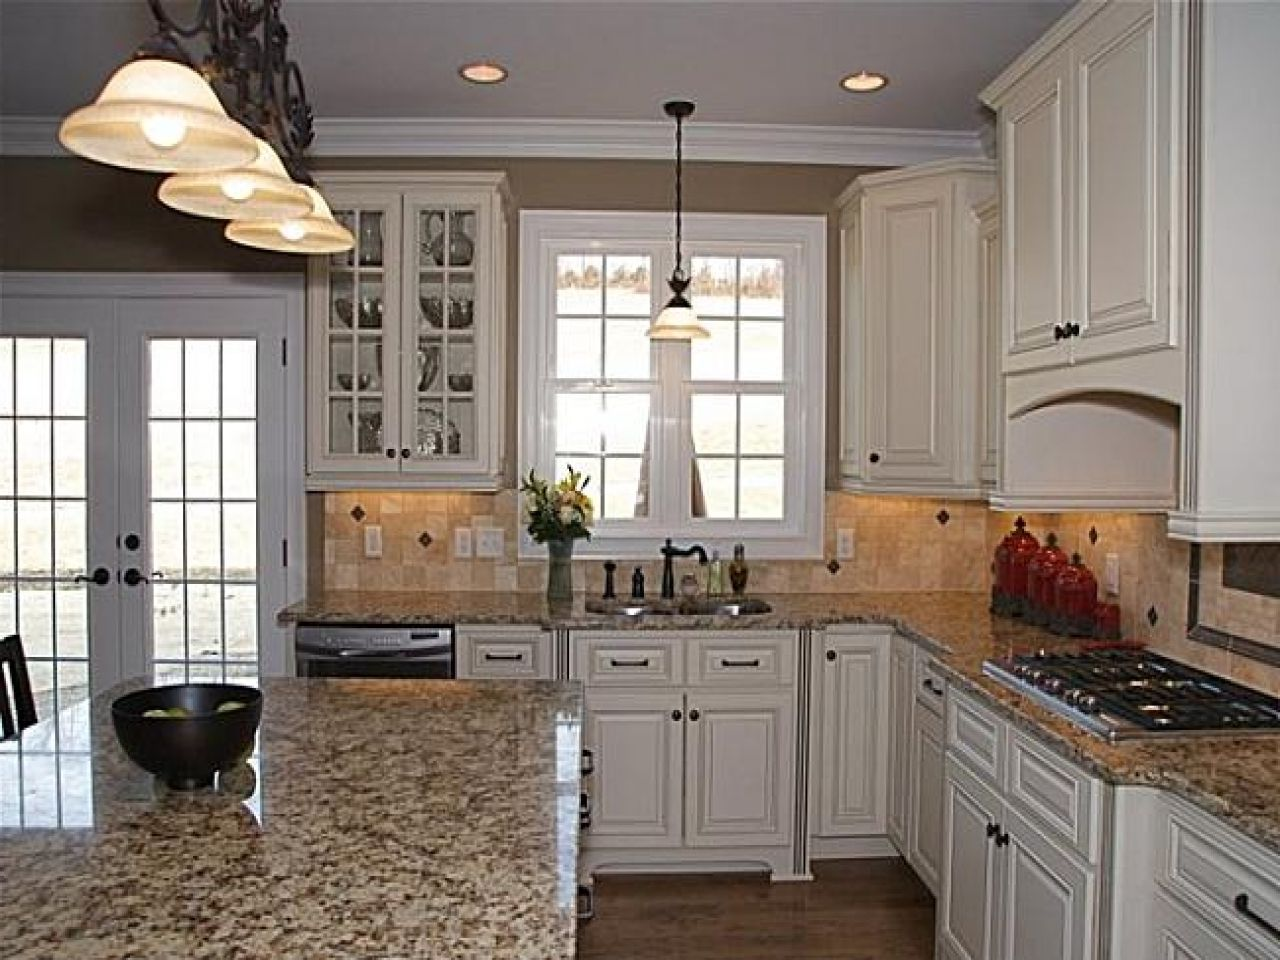 Need Large Storage Hampton Bay Cabinets Reviews Quality And Sizes Kitchen Remodel Countertops Replacing Kitchen Countertops Kitchen Remodel